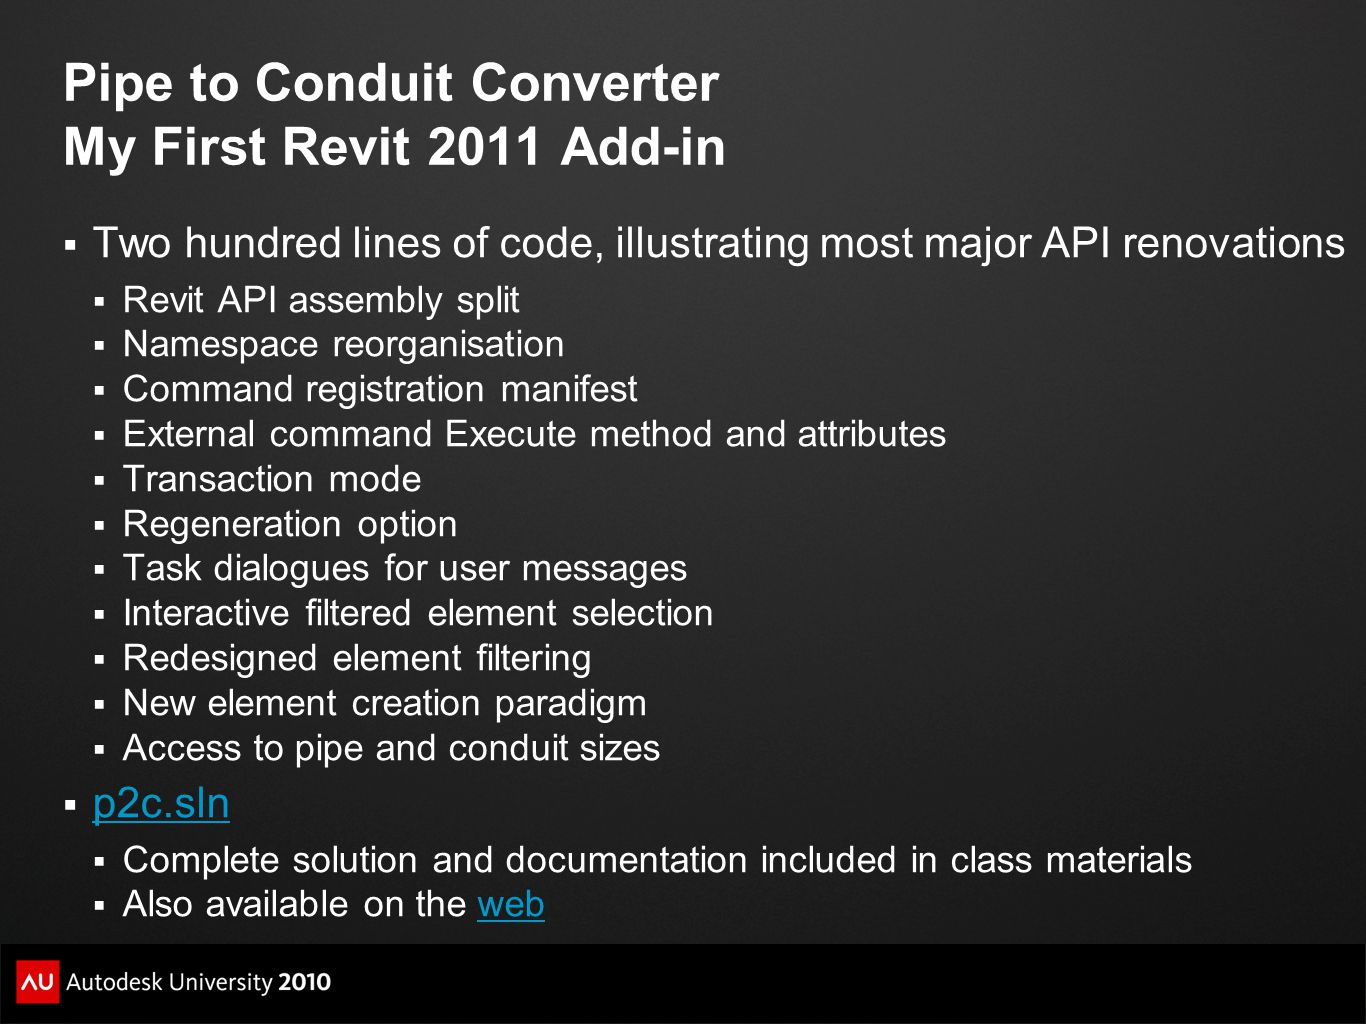 Pipe to Conduit Converter My First Revit 2011 Add-in